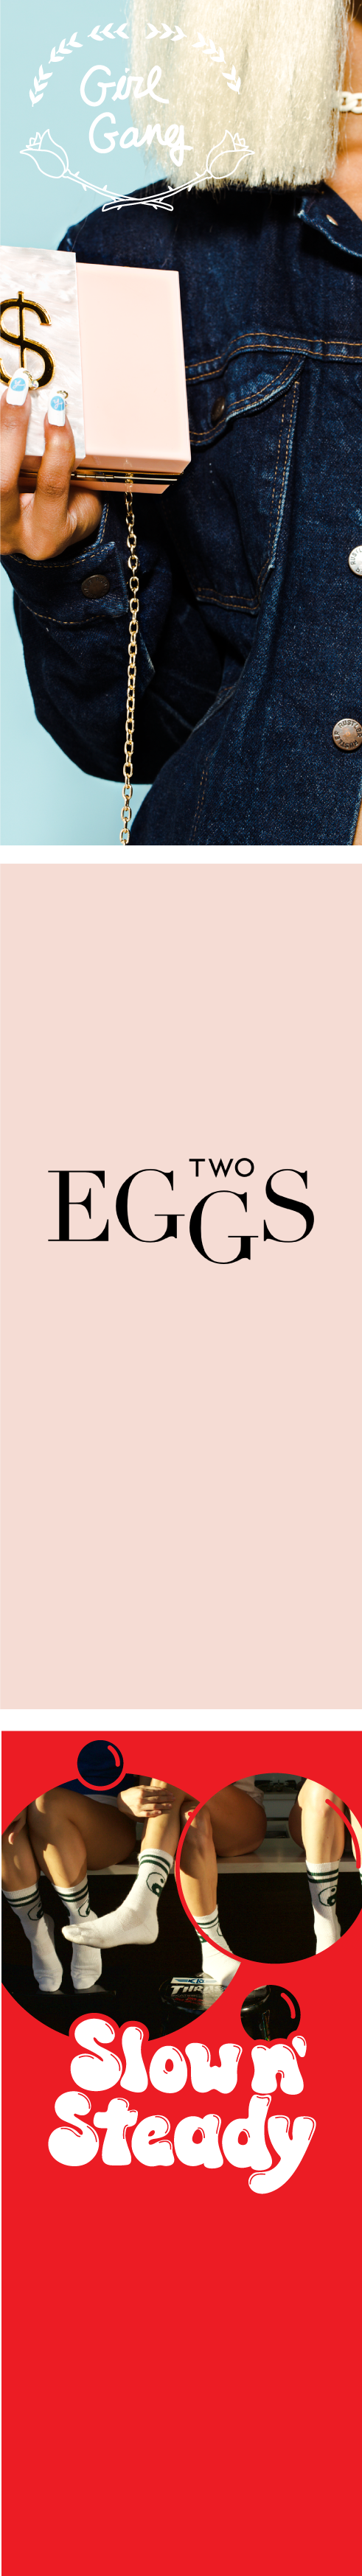 Two Eggs Road Trip Banners